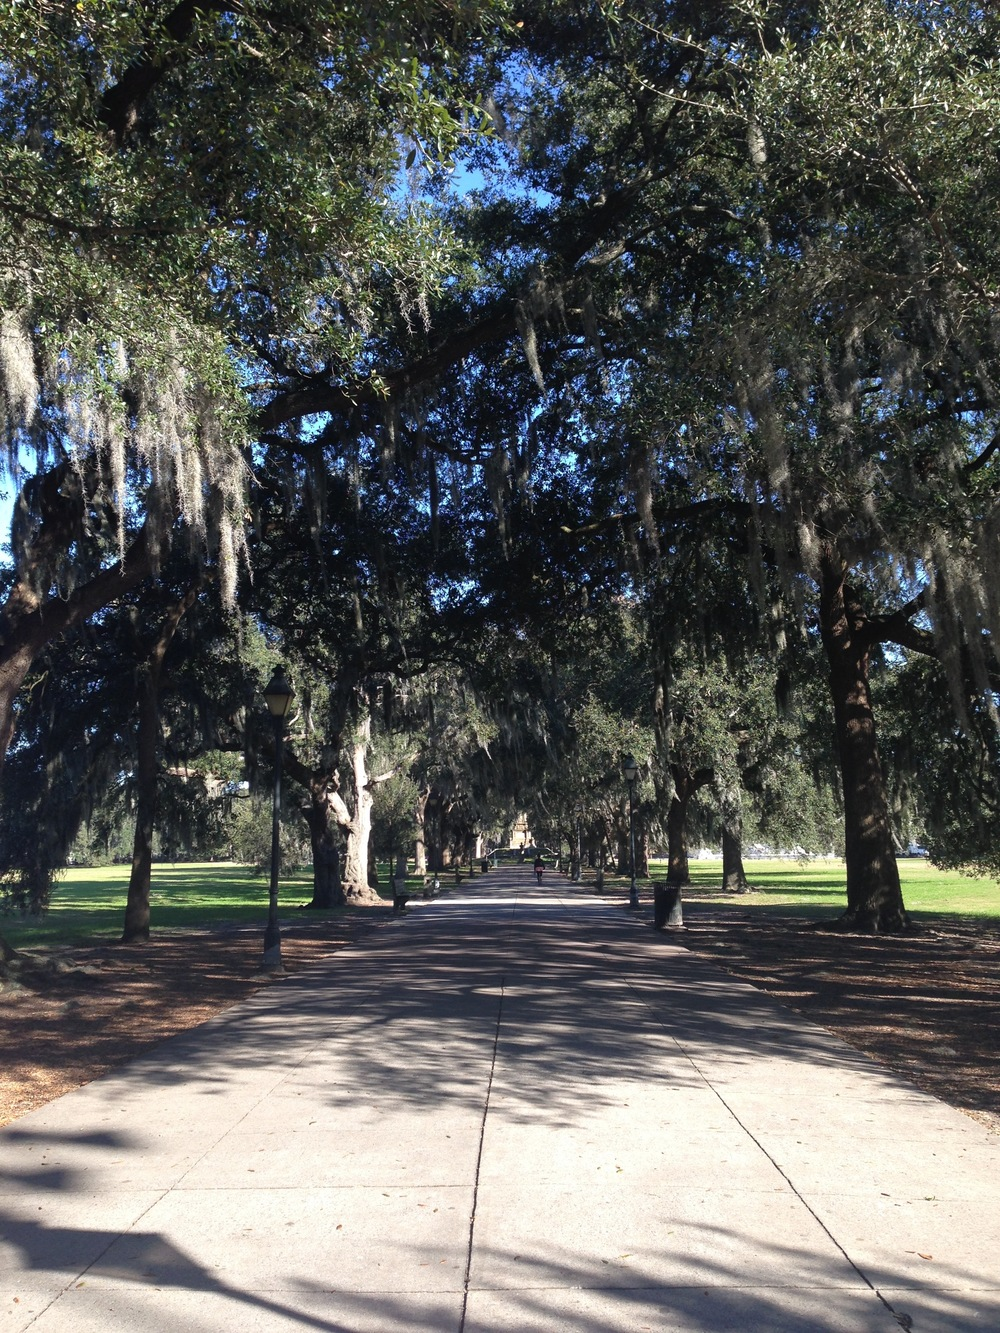 Heading into Forsyth Park.